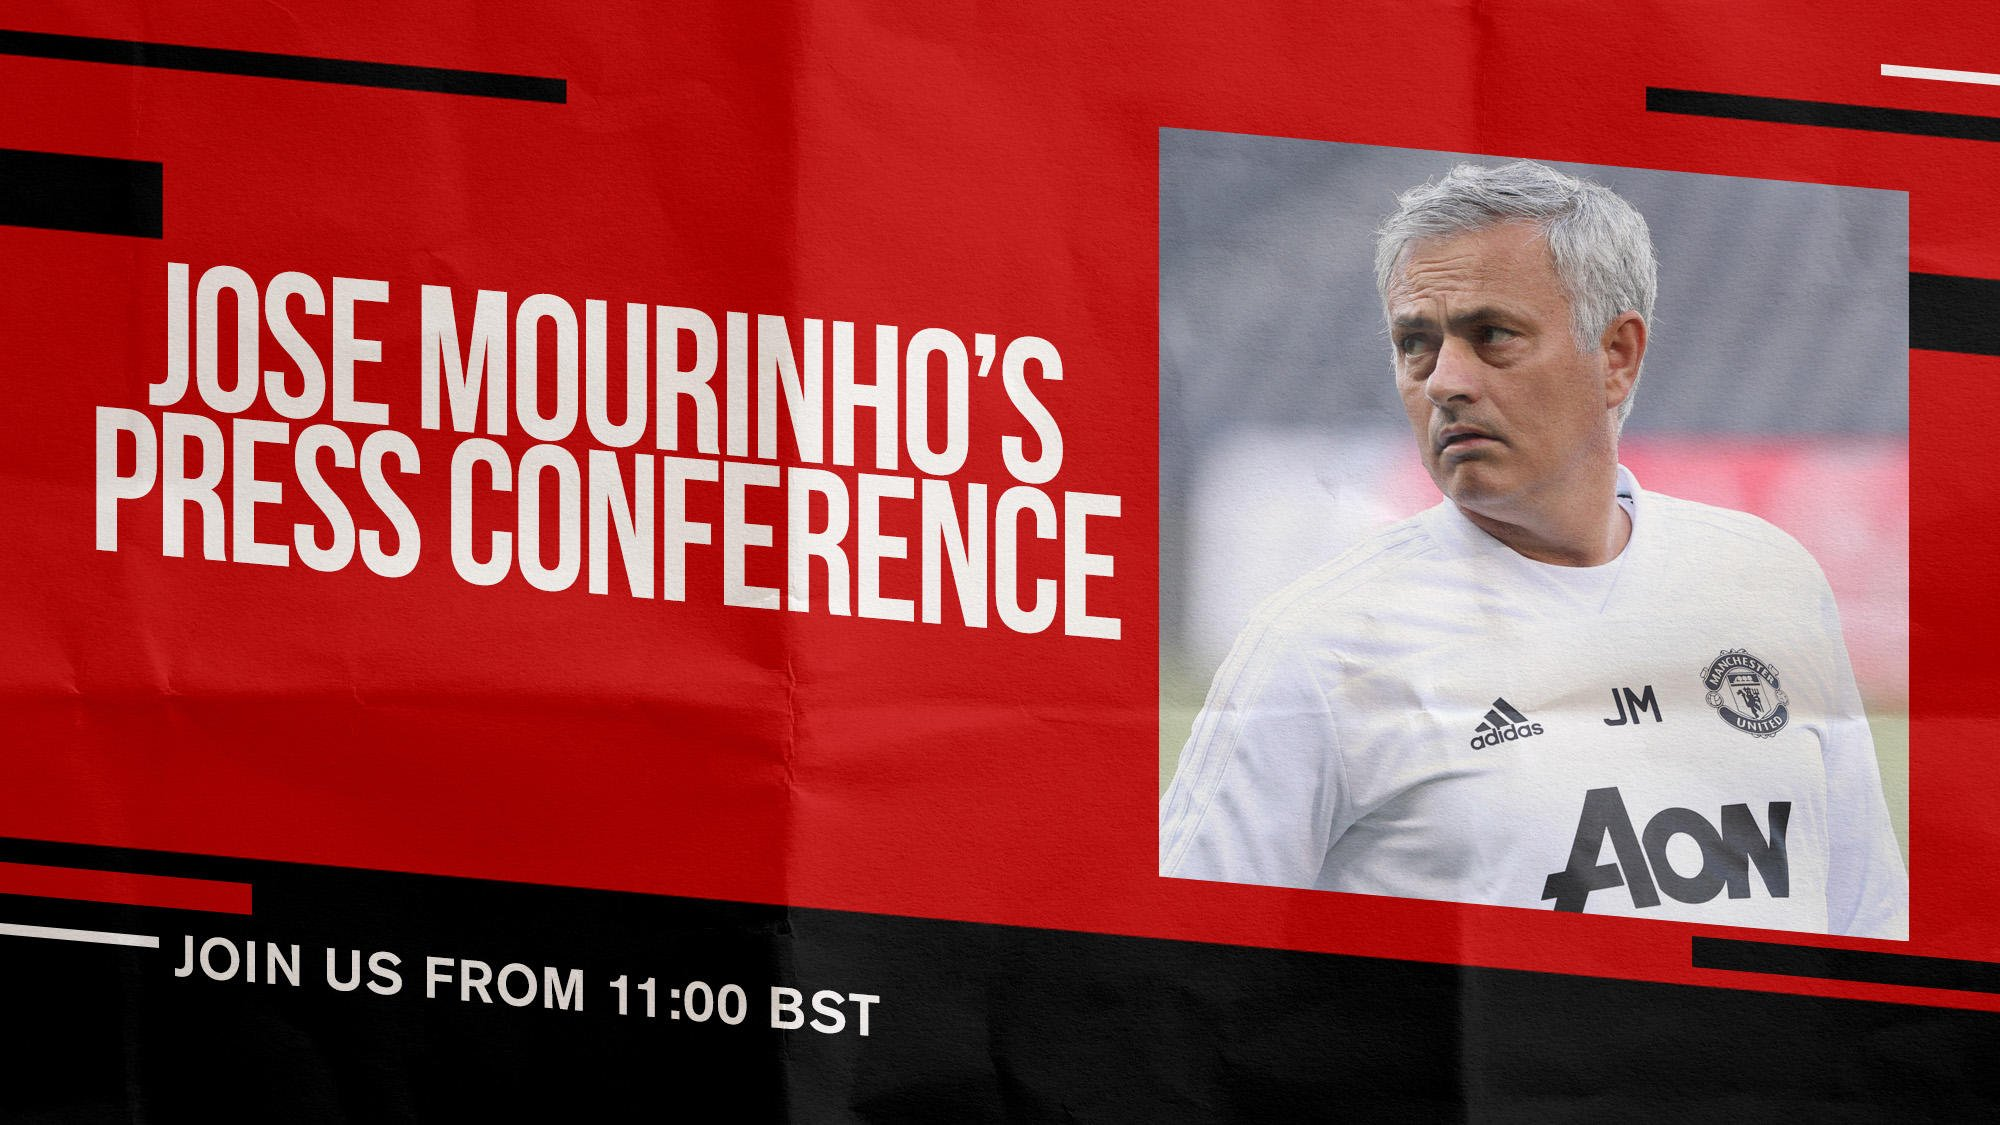 Jose will preview Saturday's Old Trafford clash with Wolves later today... #MUFC https://t.co/AKfcSL5zyq